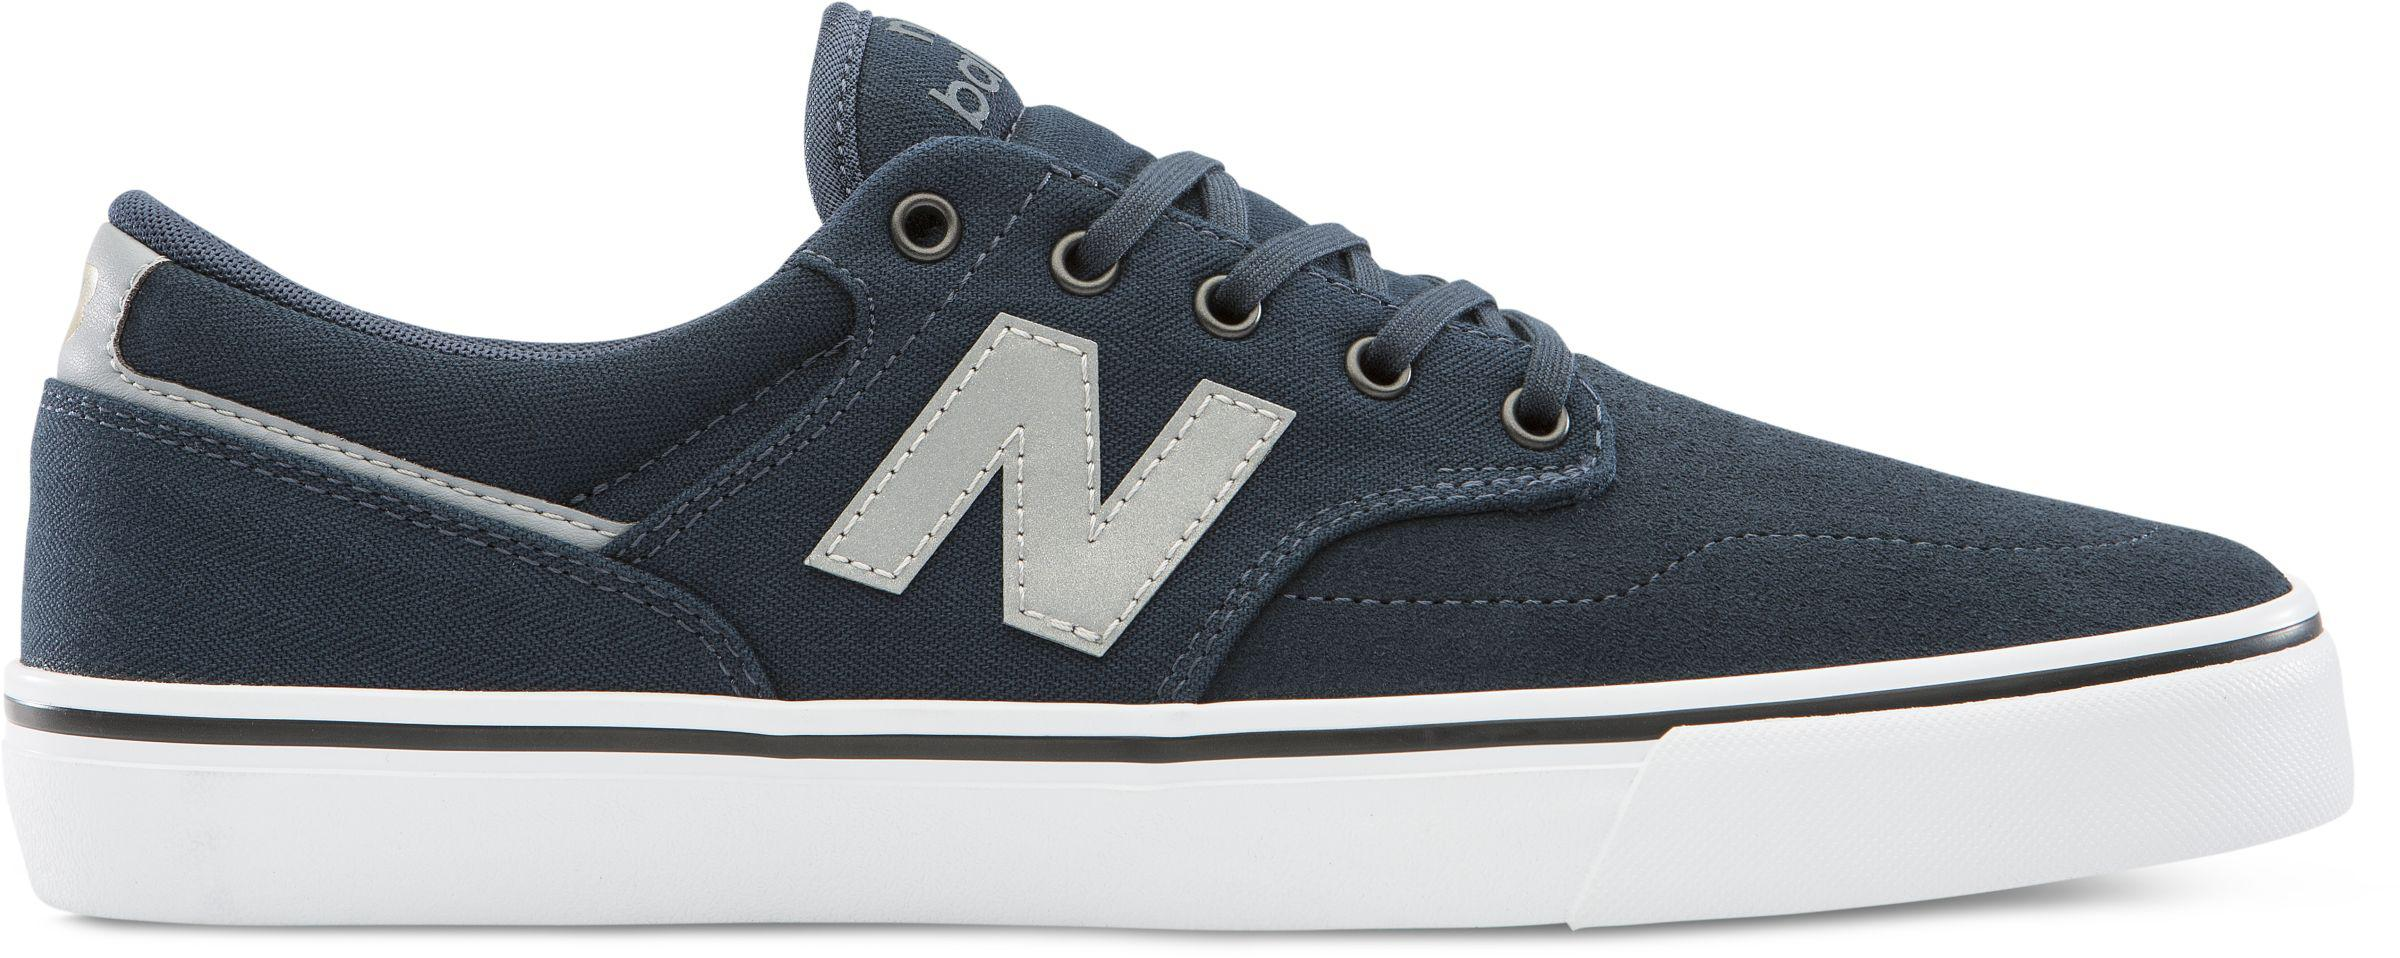 New Balance. Men's Blue 331